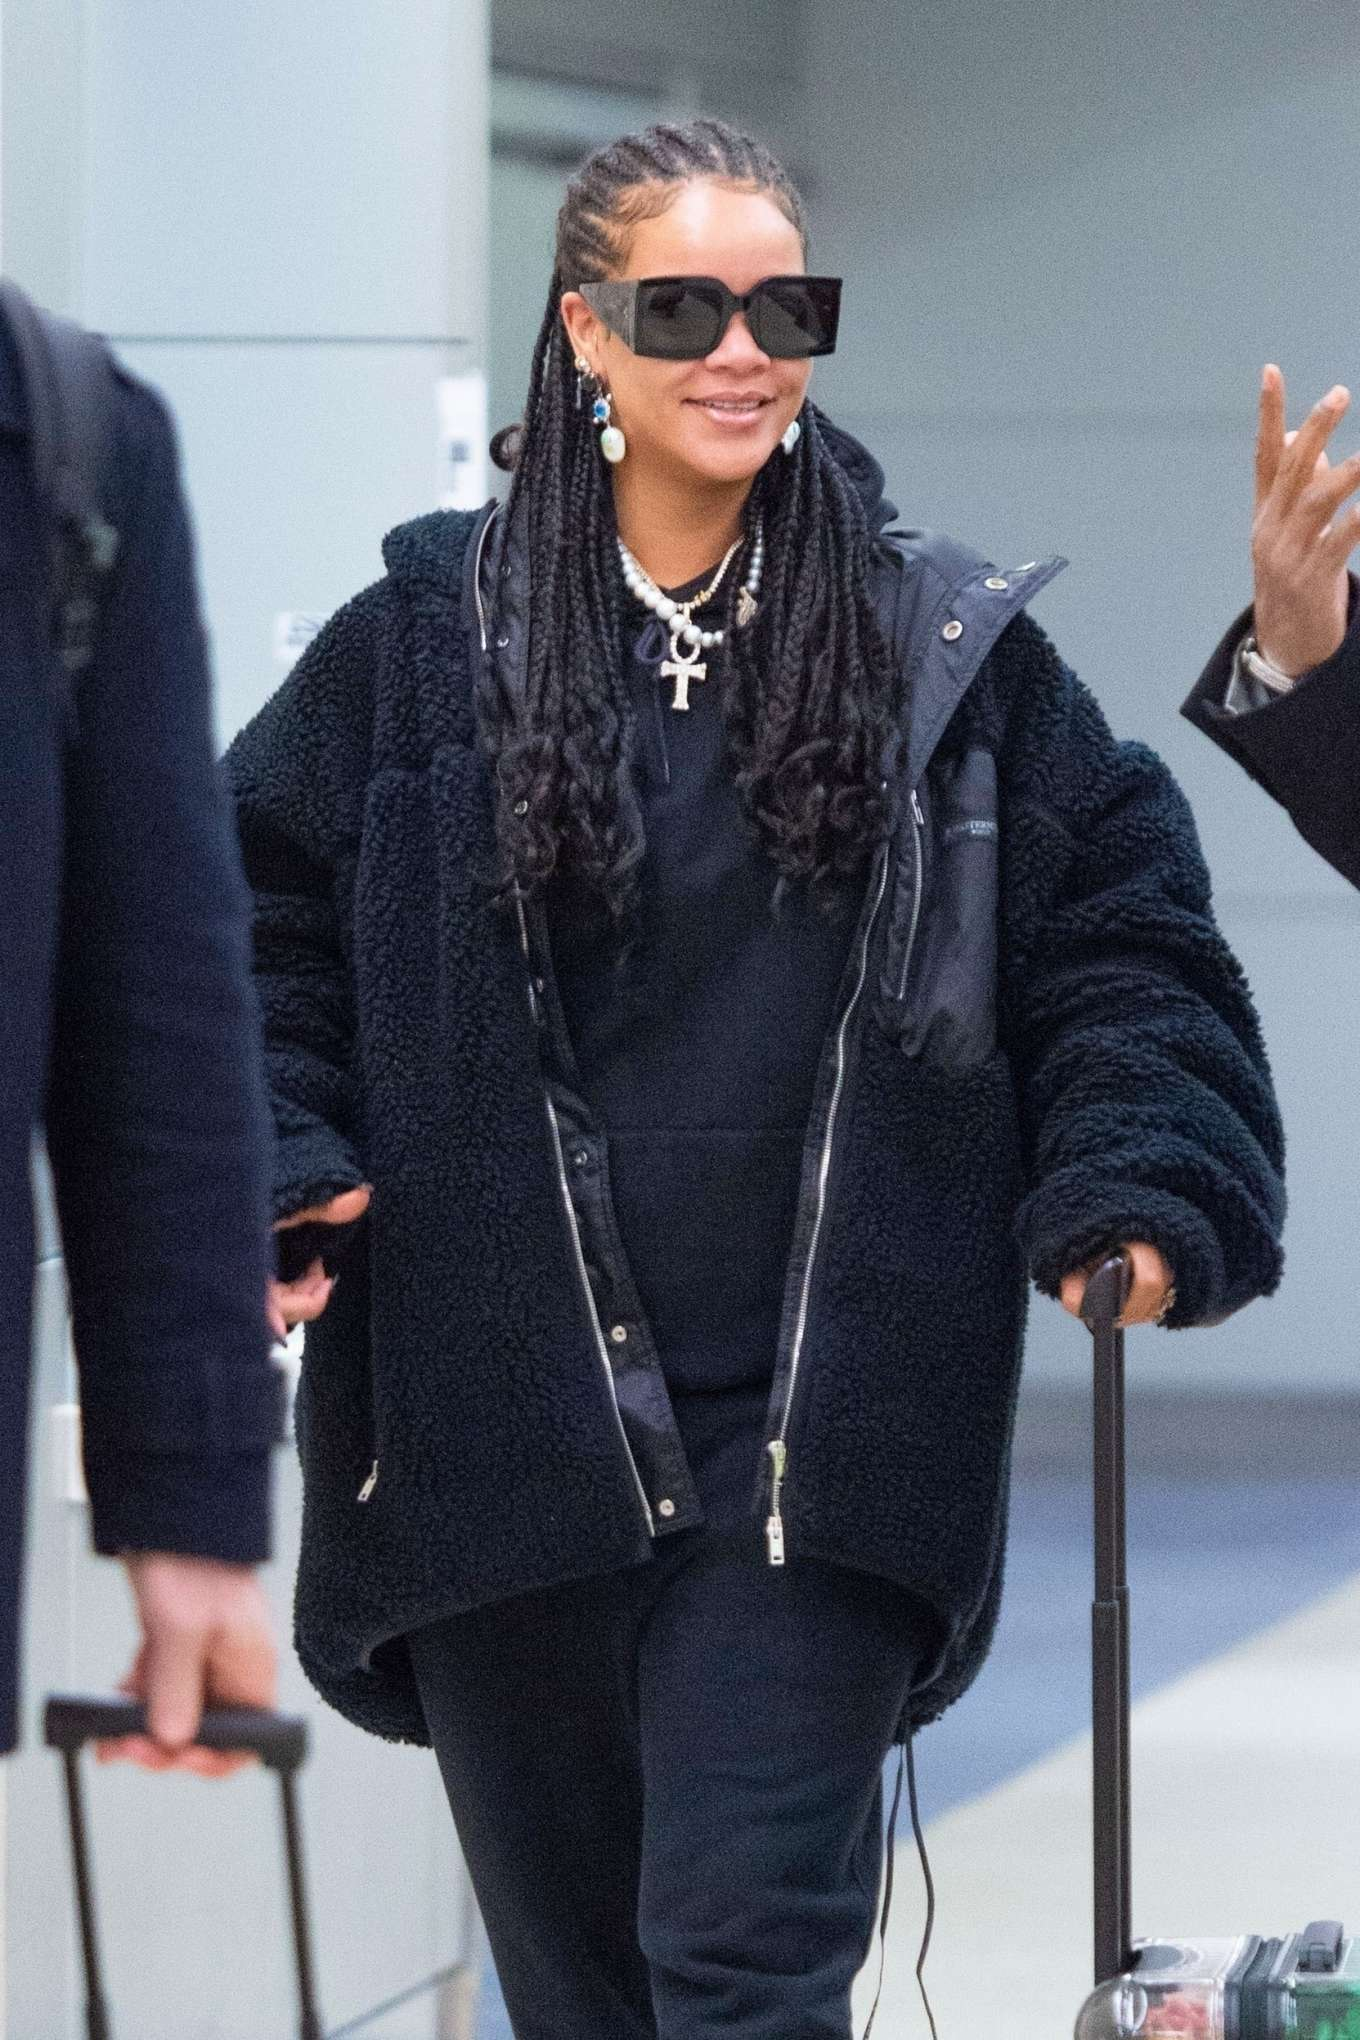 Rihanna - Arrives at JFK Airport in New York City